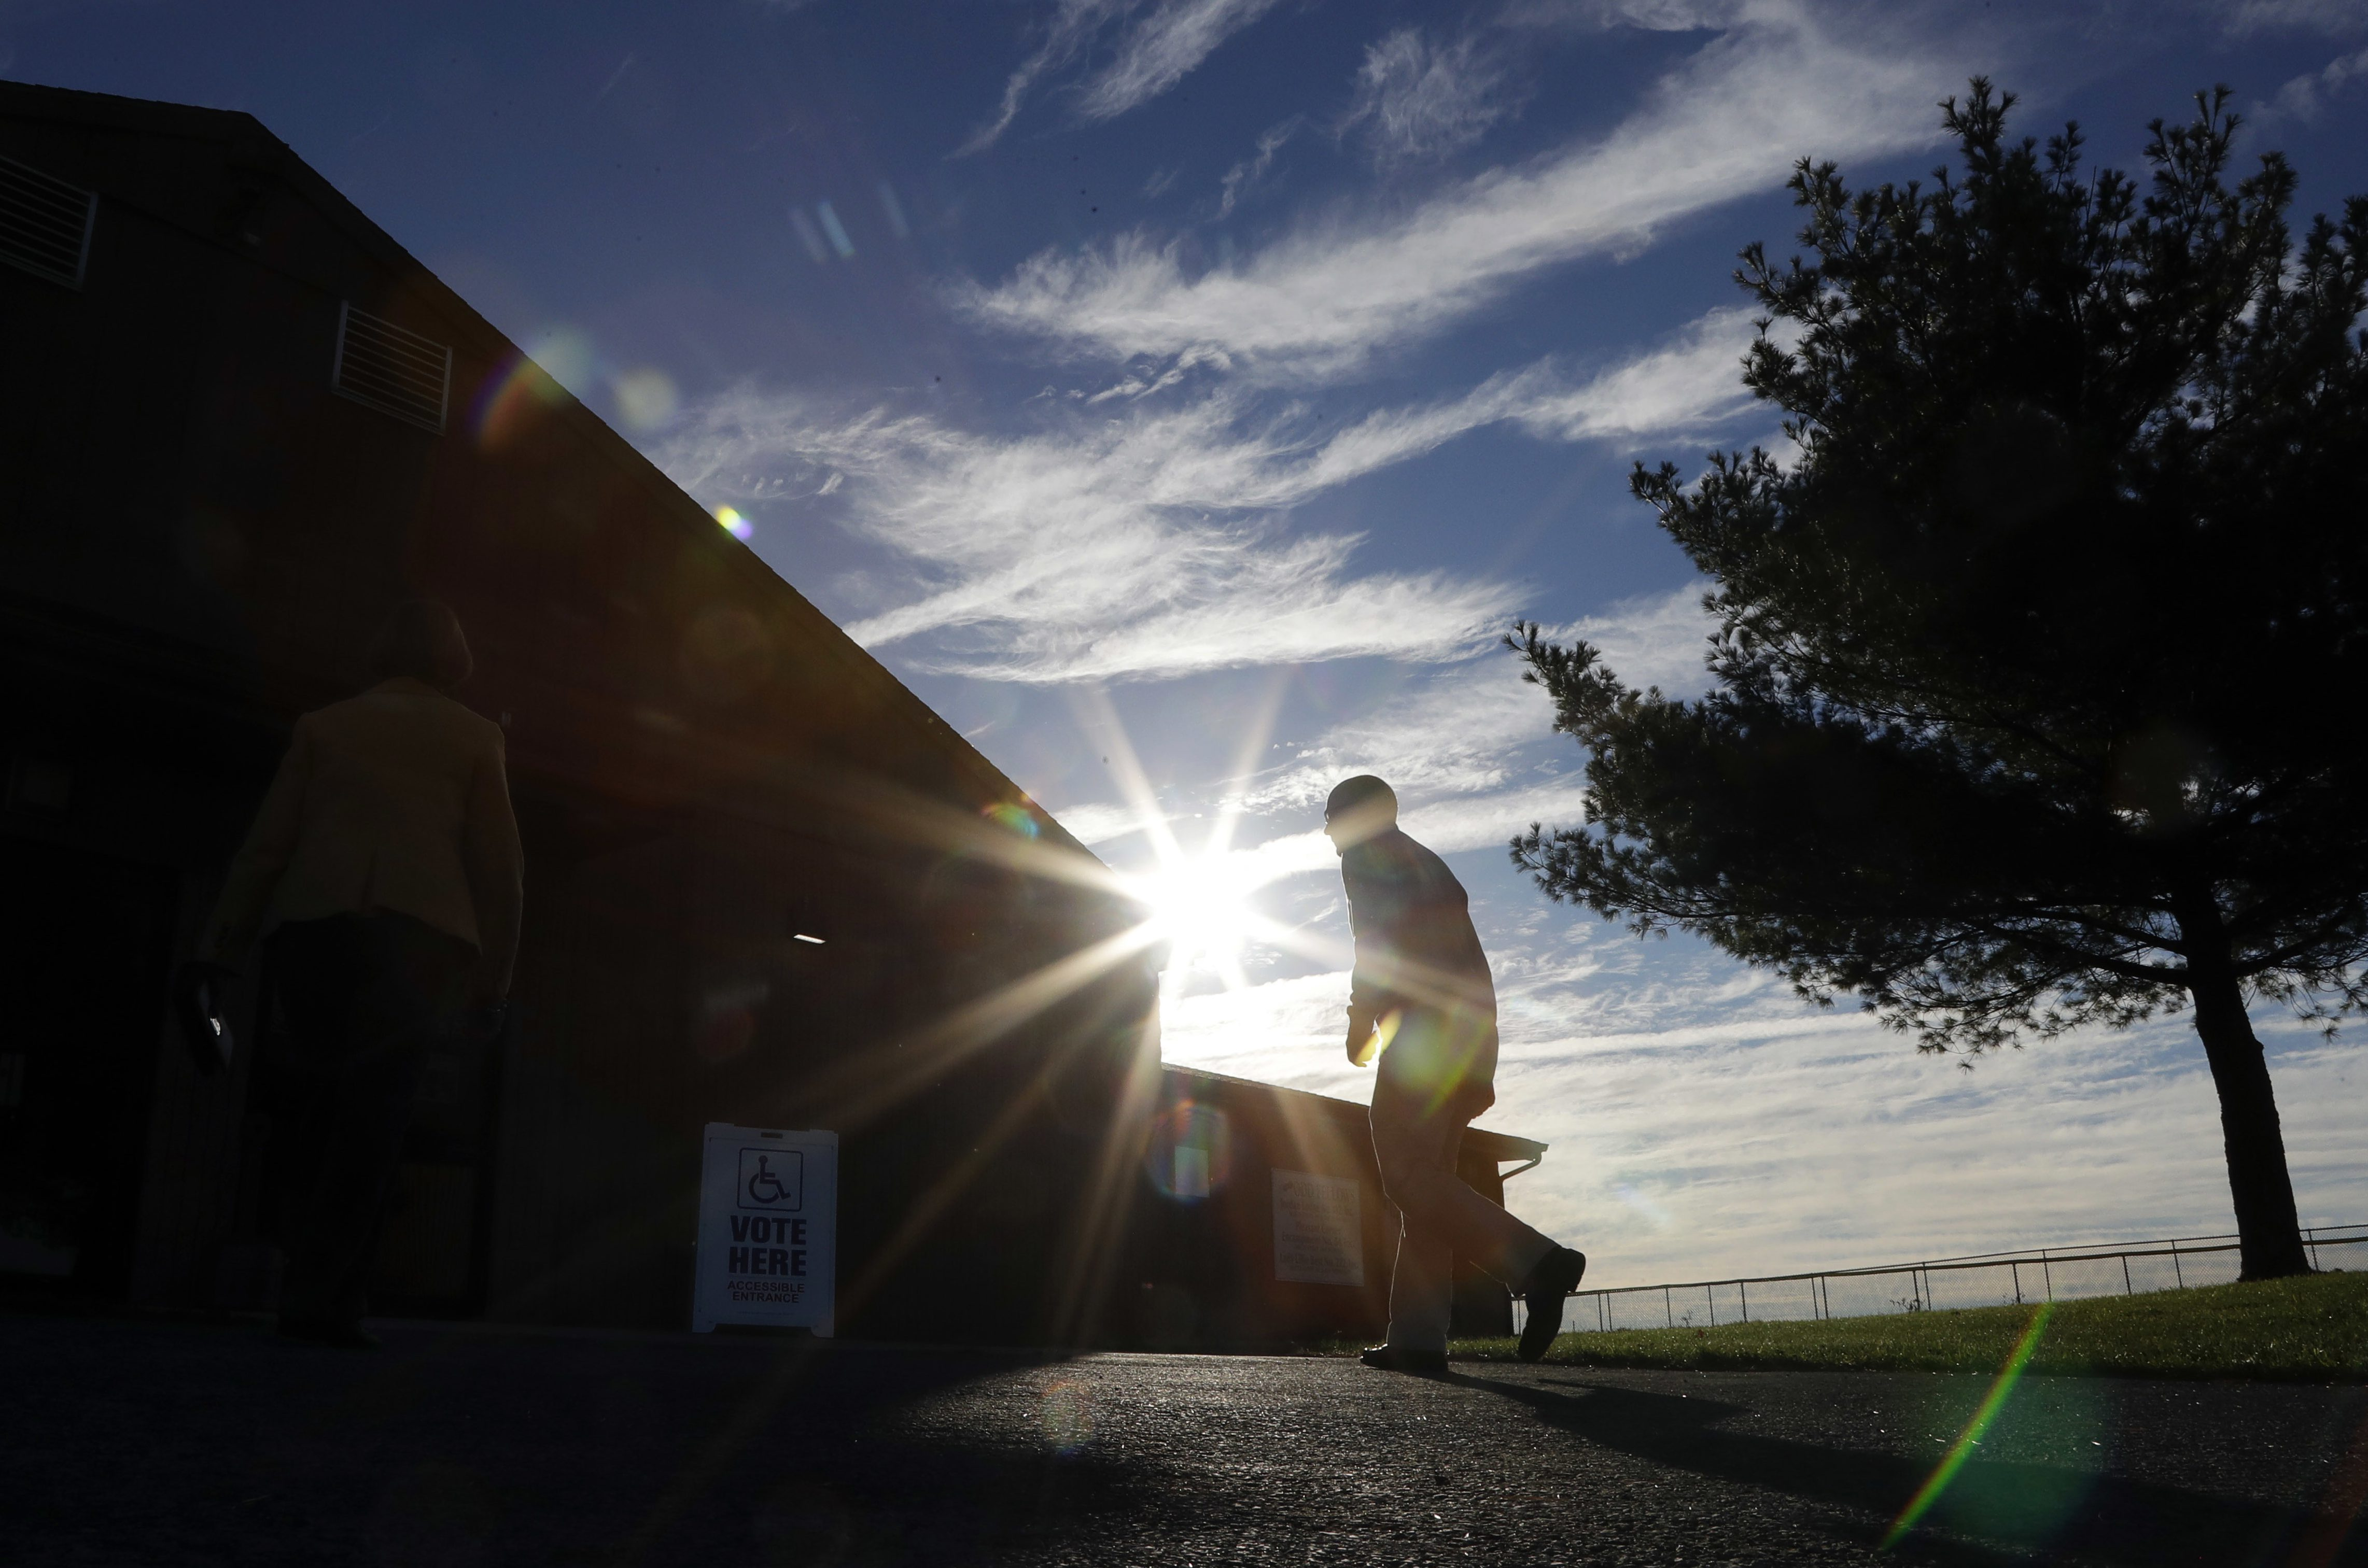 A voters walks to a polling place at the Schnecksville Fire Company, Tuesday, Nov. 8, 2016, in Schnecksville, Pa.